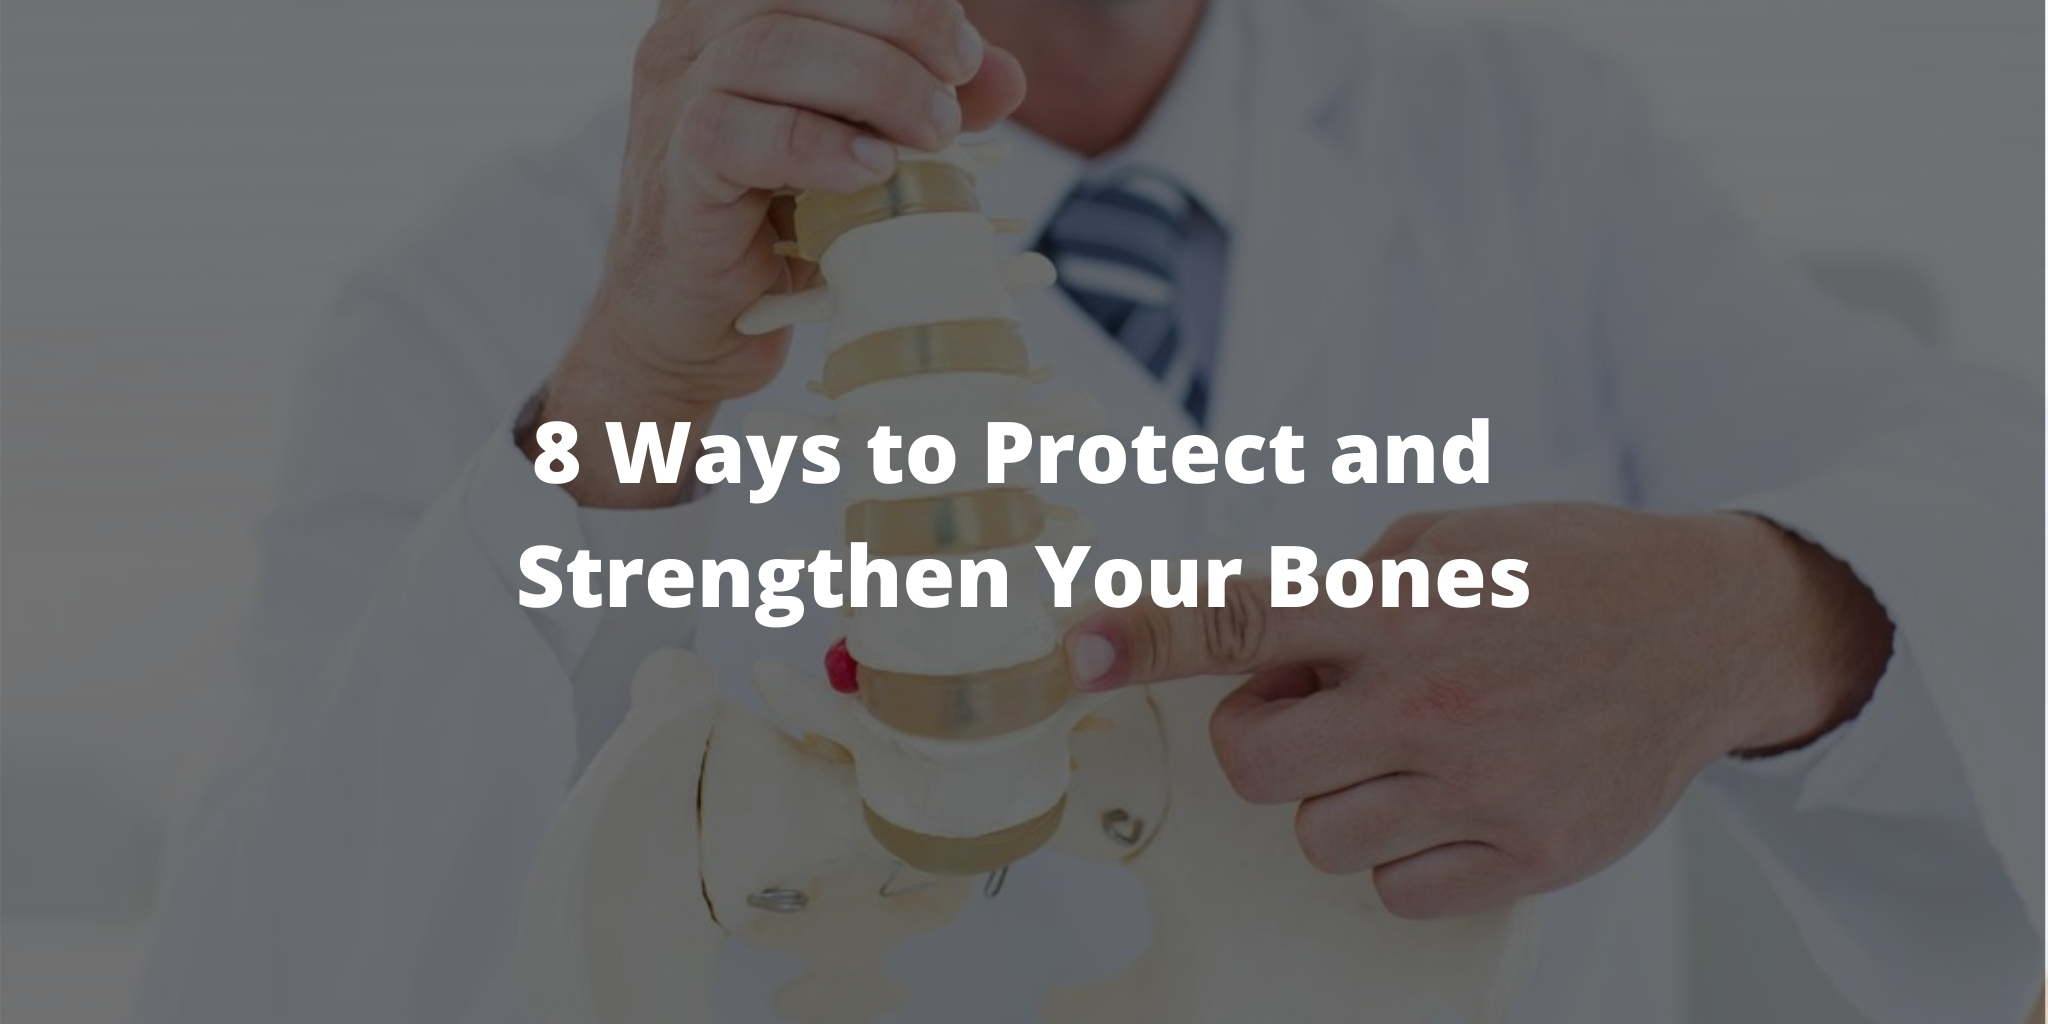 8 Ways to Protect and Strengthen Your Bones